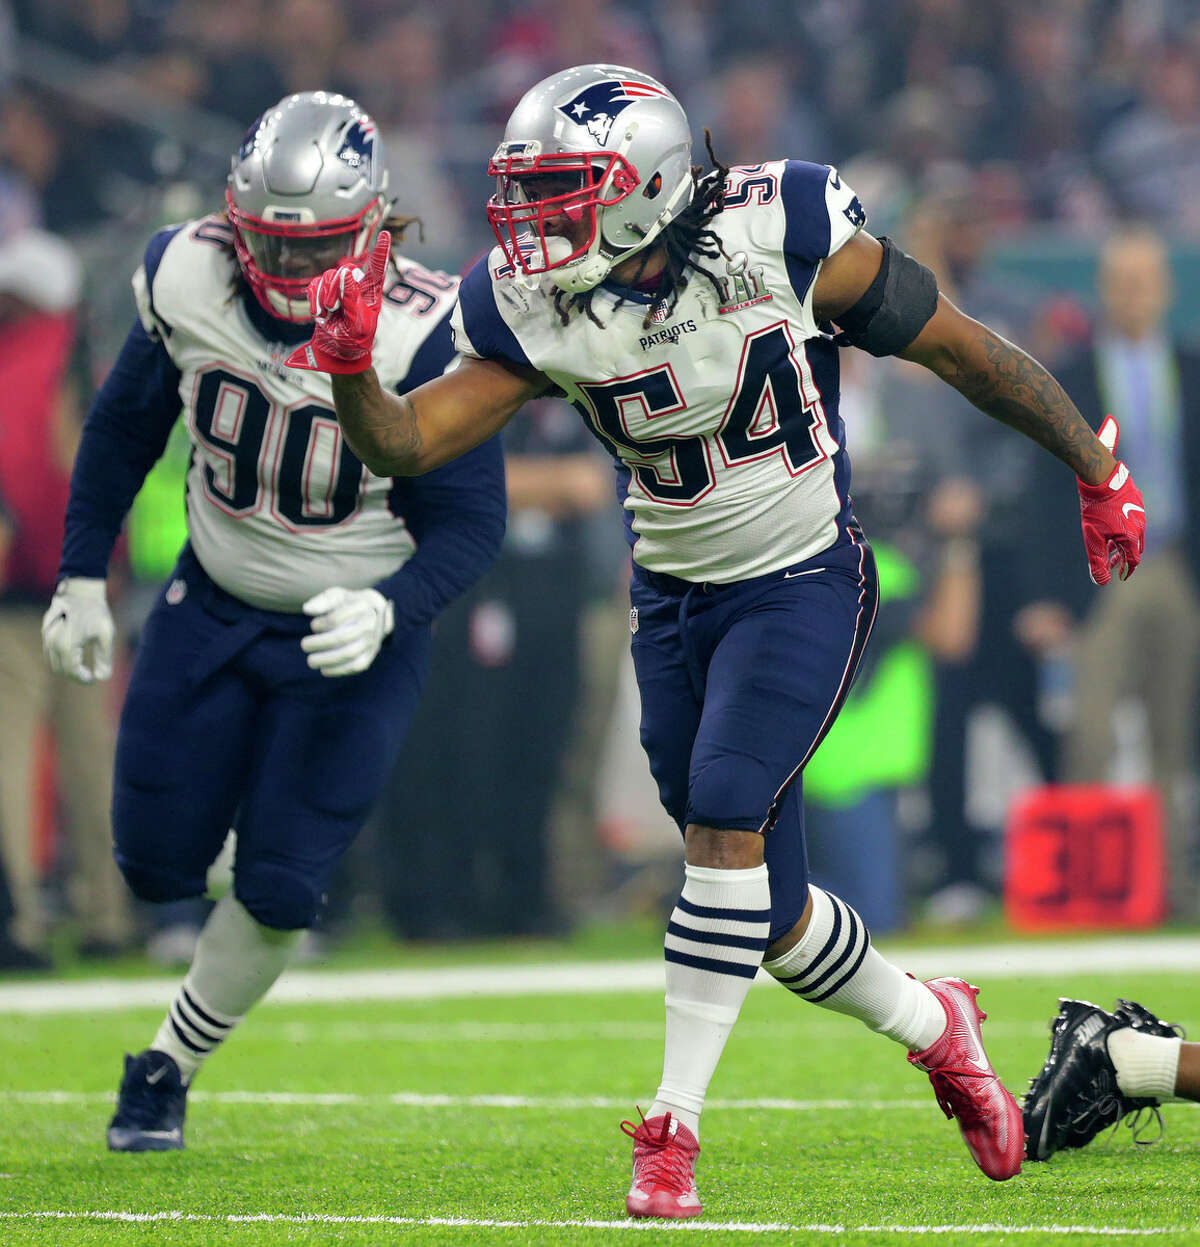 Dont'a Hightower, LB, Patriots The Patriots refuse to overpay for any player, no matter how valuable. Hightower has reportedly already met with the Jets and Titans and has received interest from the Steelers. However, there are reports that he badly wants to stay in New England.